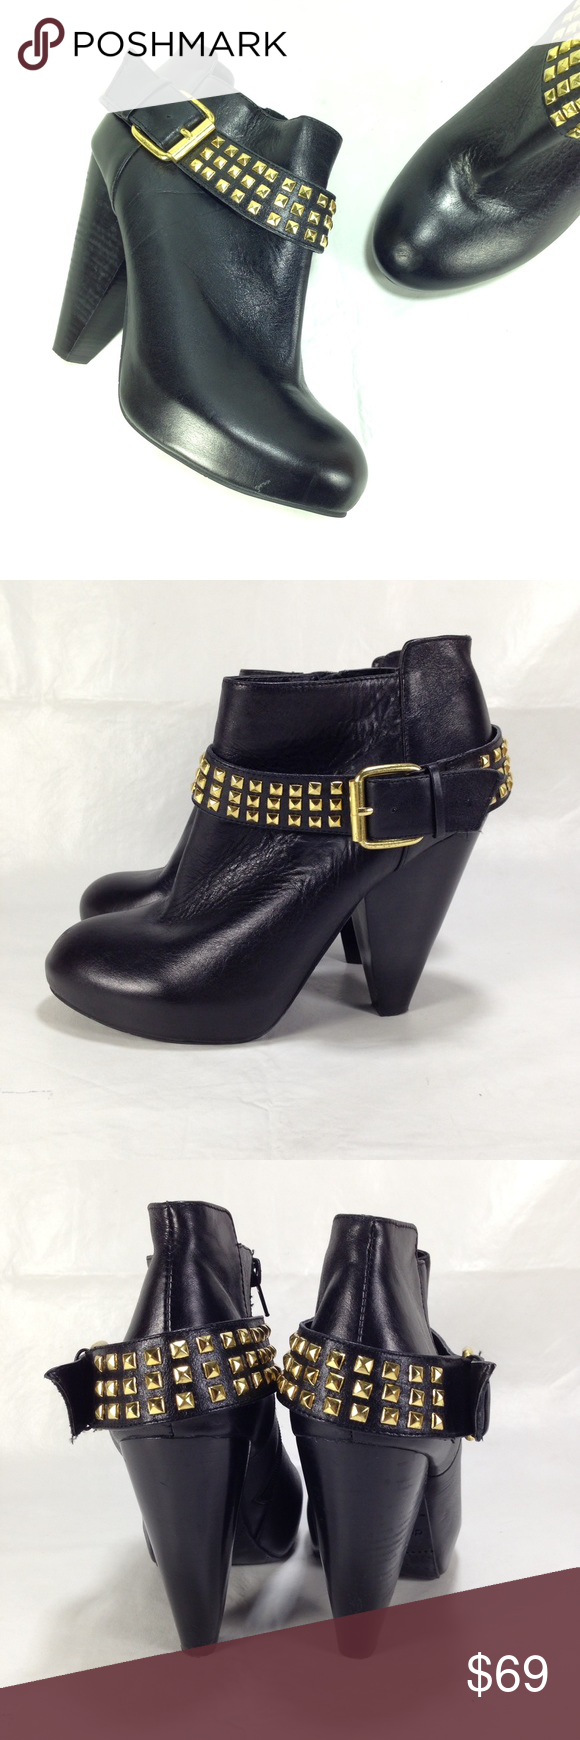 bbc0f3c7644 DV by Dolce Vita 'Wesley' Booties Black leather ankle boots with ...